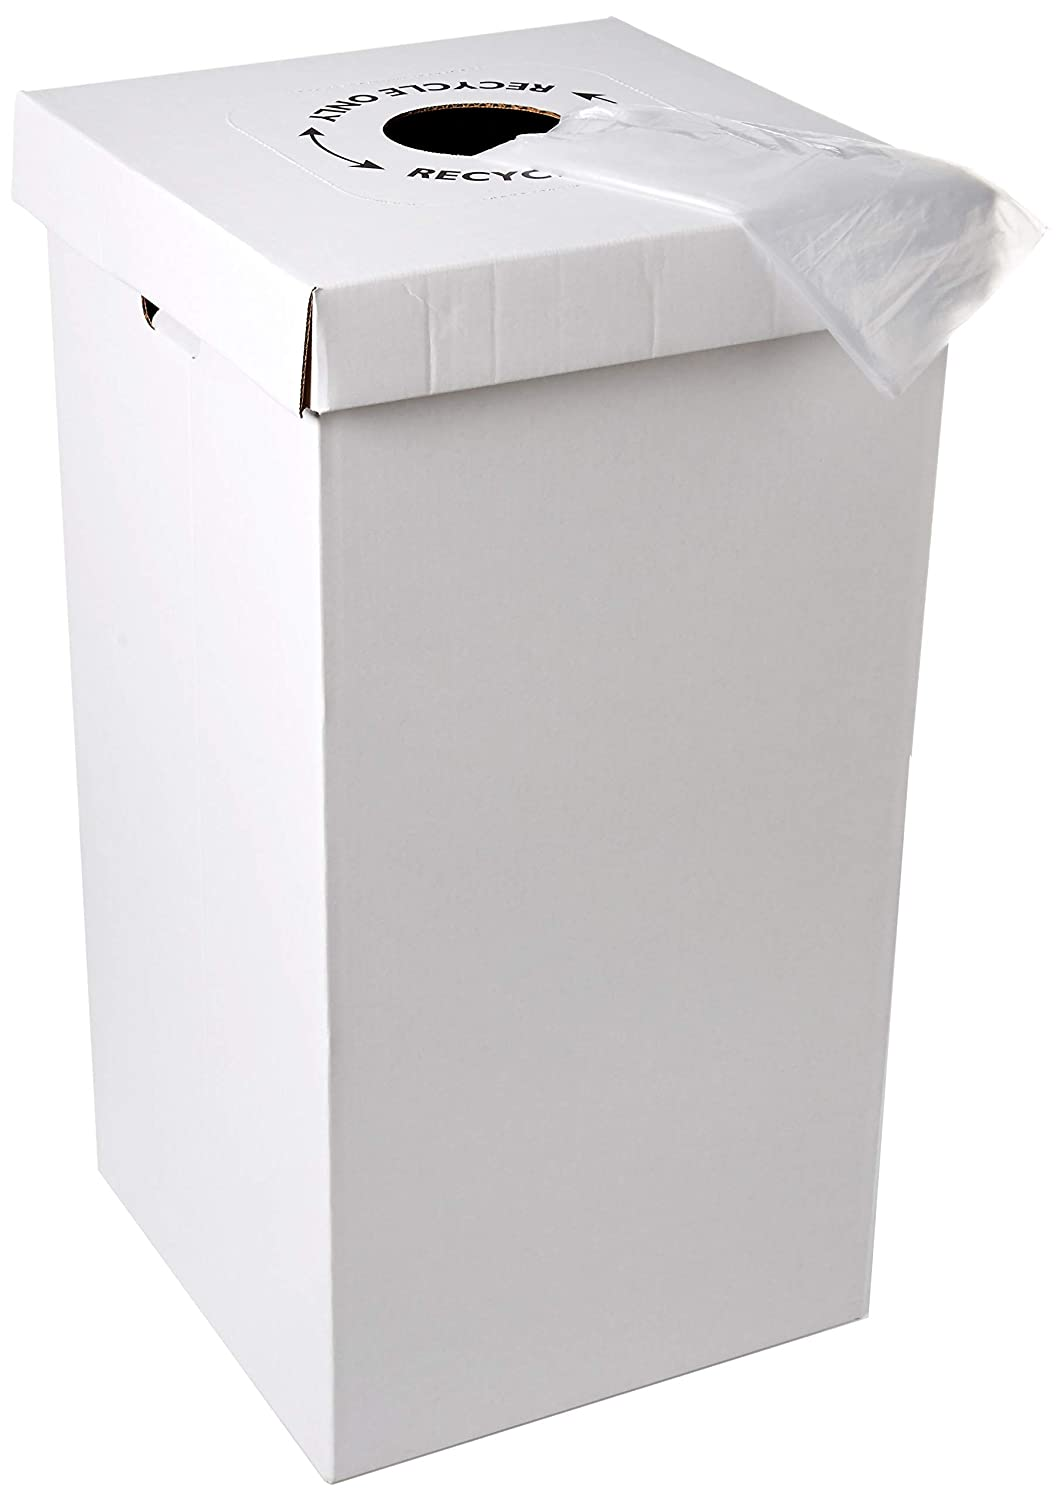 Disposable Cardboard Trash and Recycling Boxes: Bin + Lid + Trash Bag- White (Qty. 10 Sets)